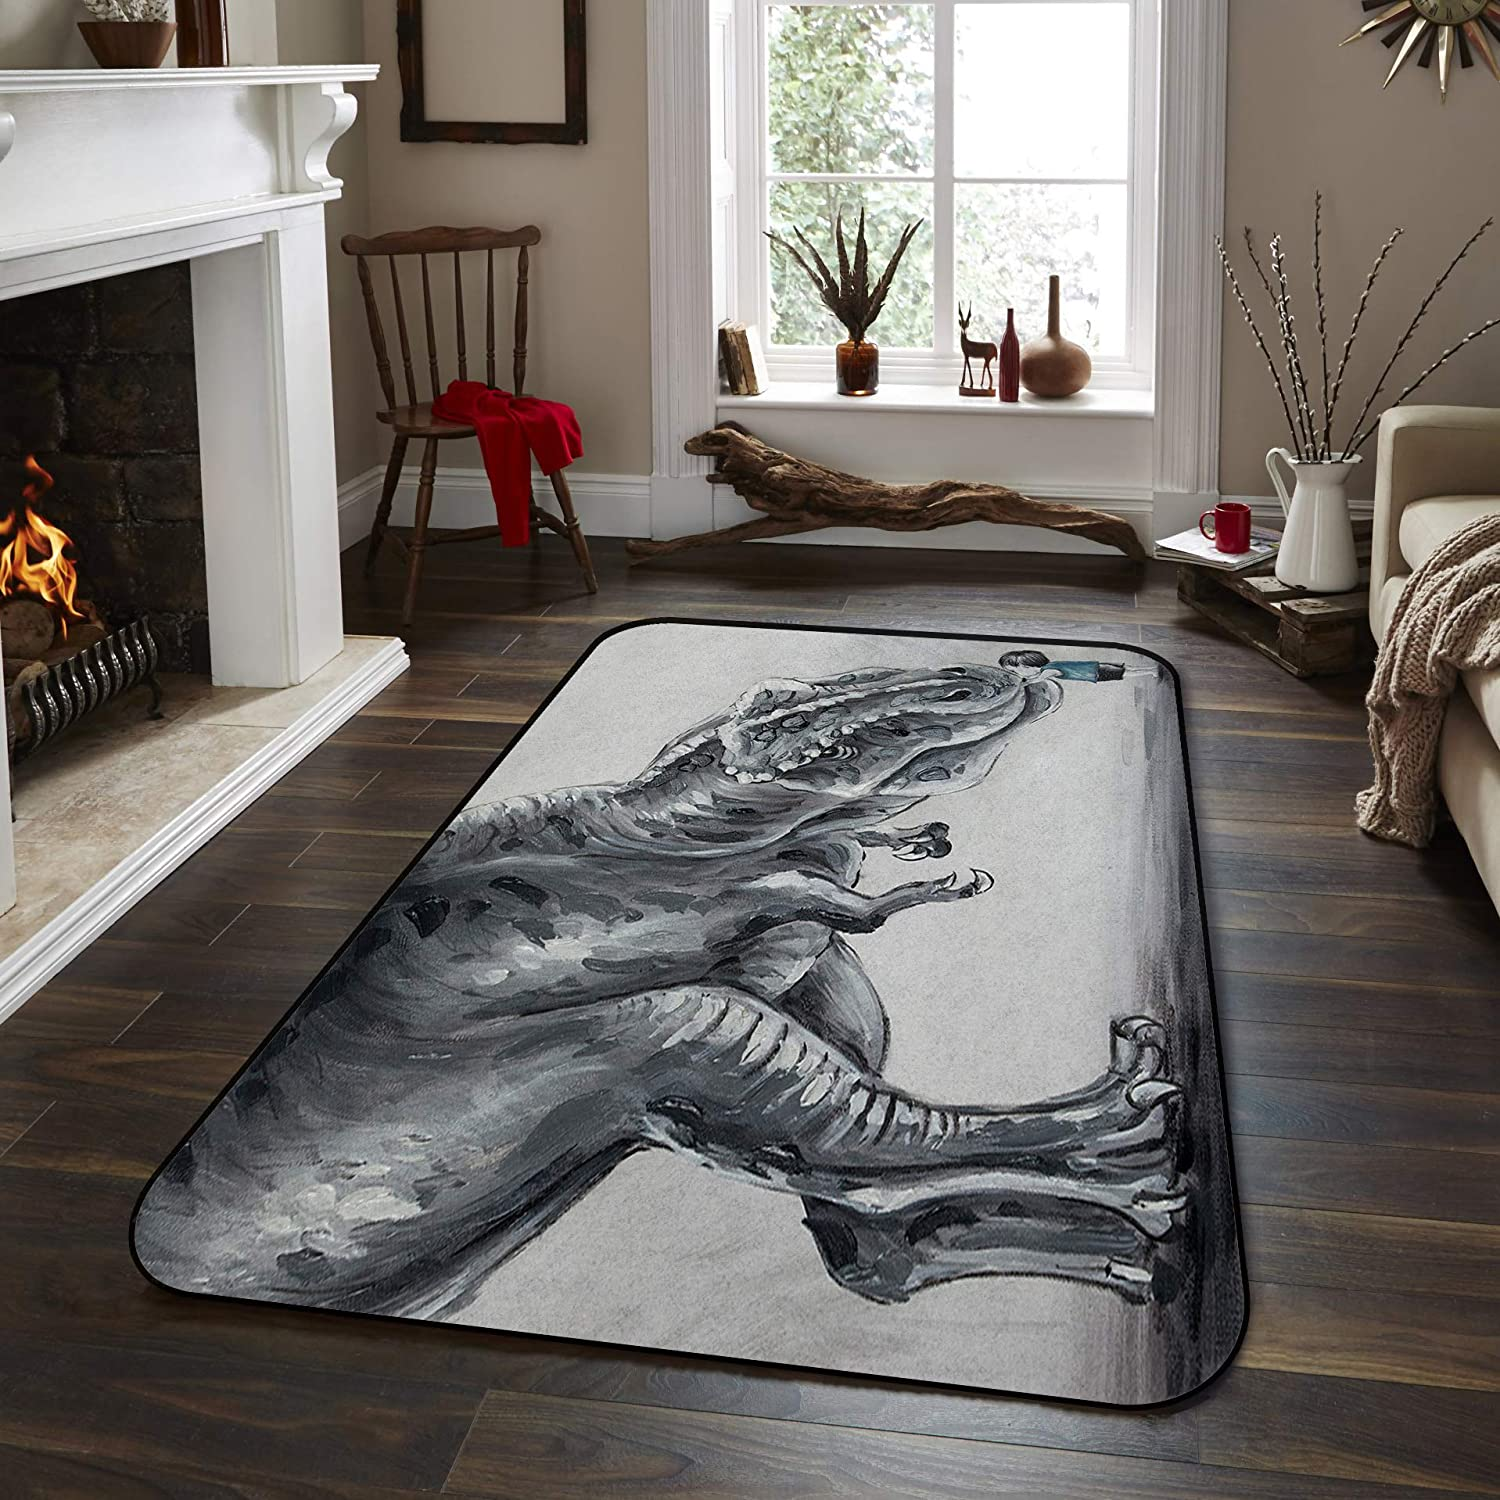 Soft 70% OFF Outlet Area Rugs for Bedroom Lovely Ranking integrated 1st place Boy Dinosaur in The F Touching